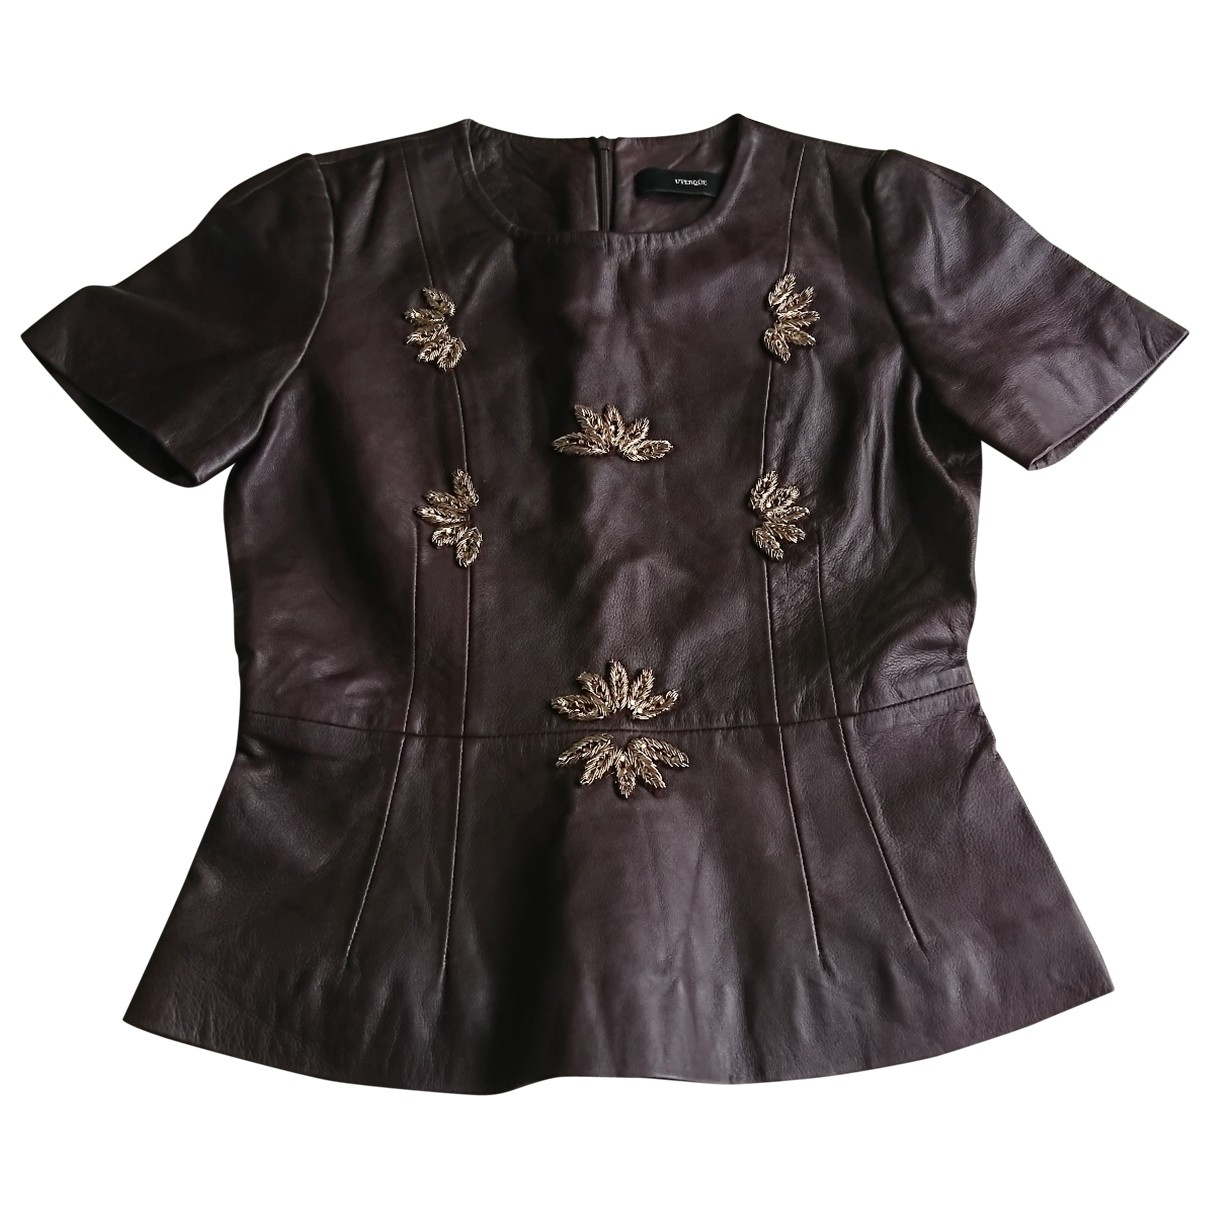 Uterque \N Brown Leather  top for Women S International